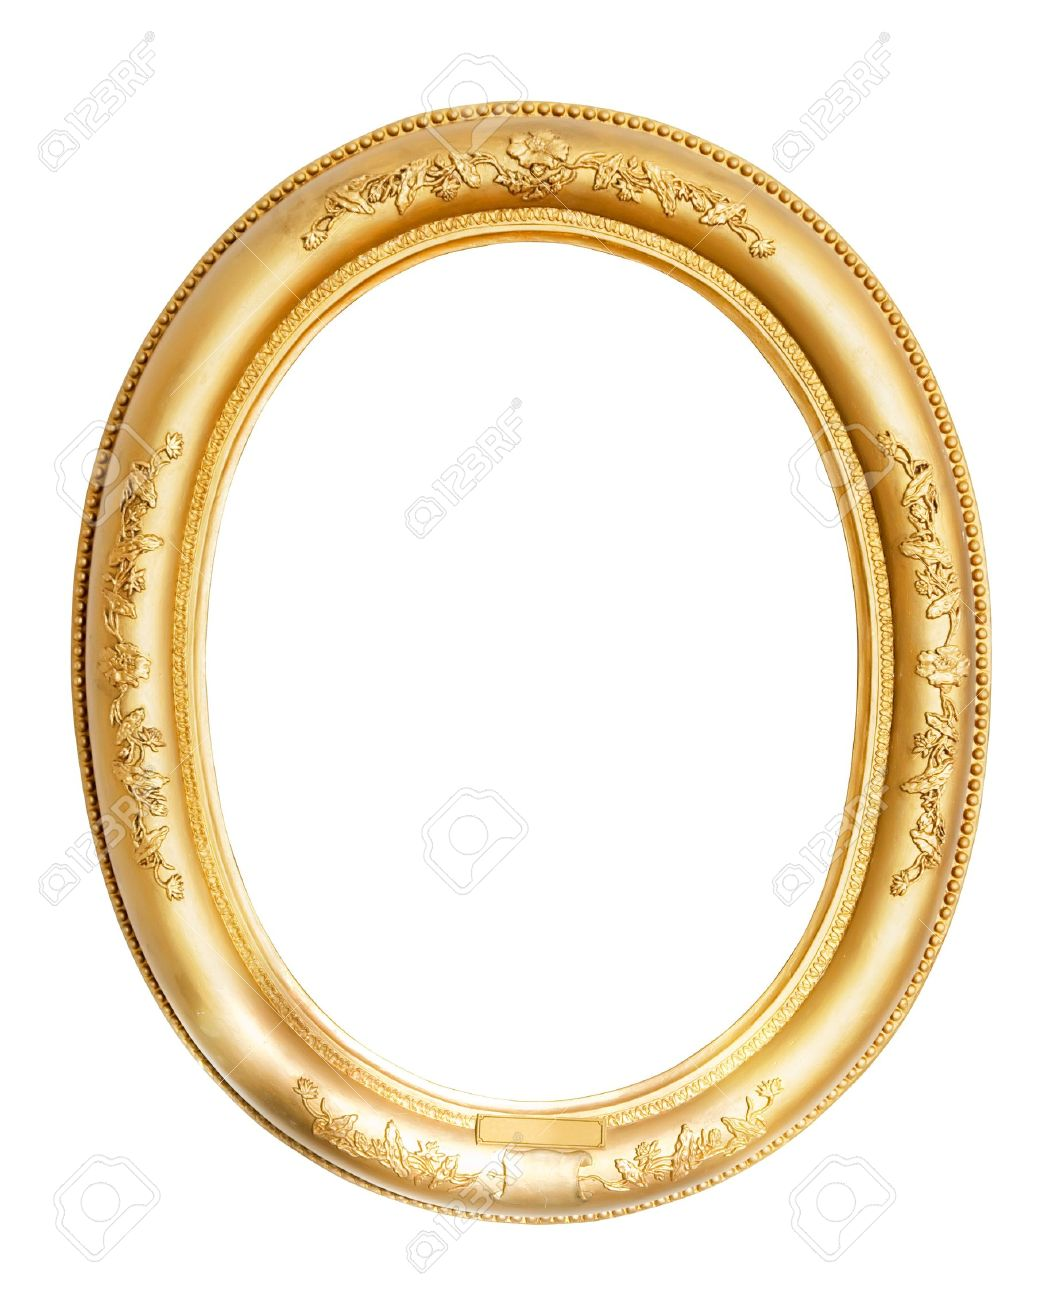 oval gold frame Stock Photo - 8996656